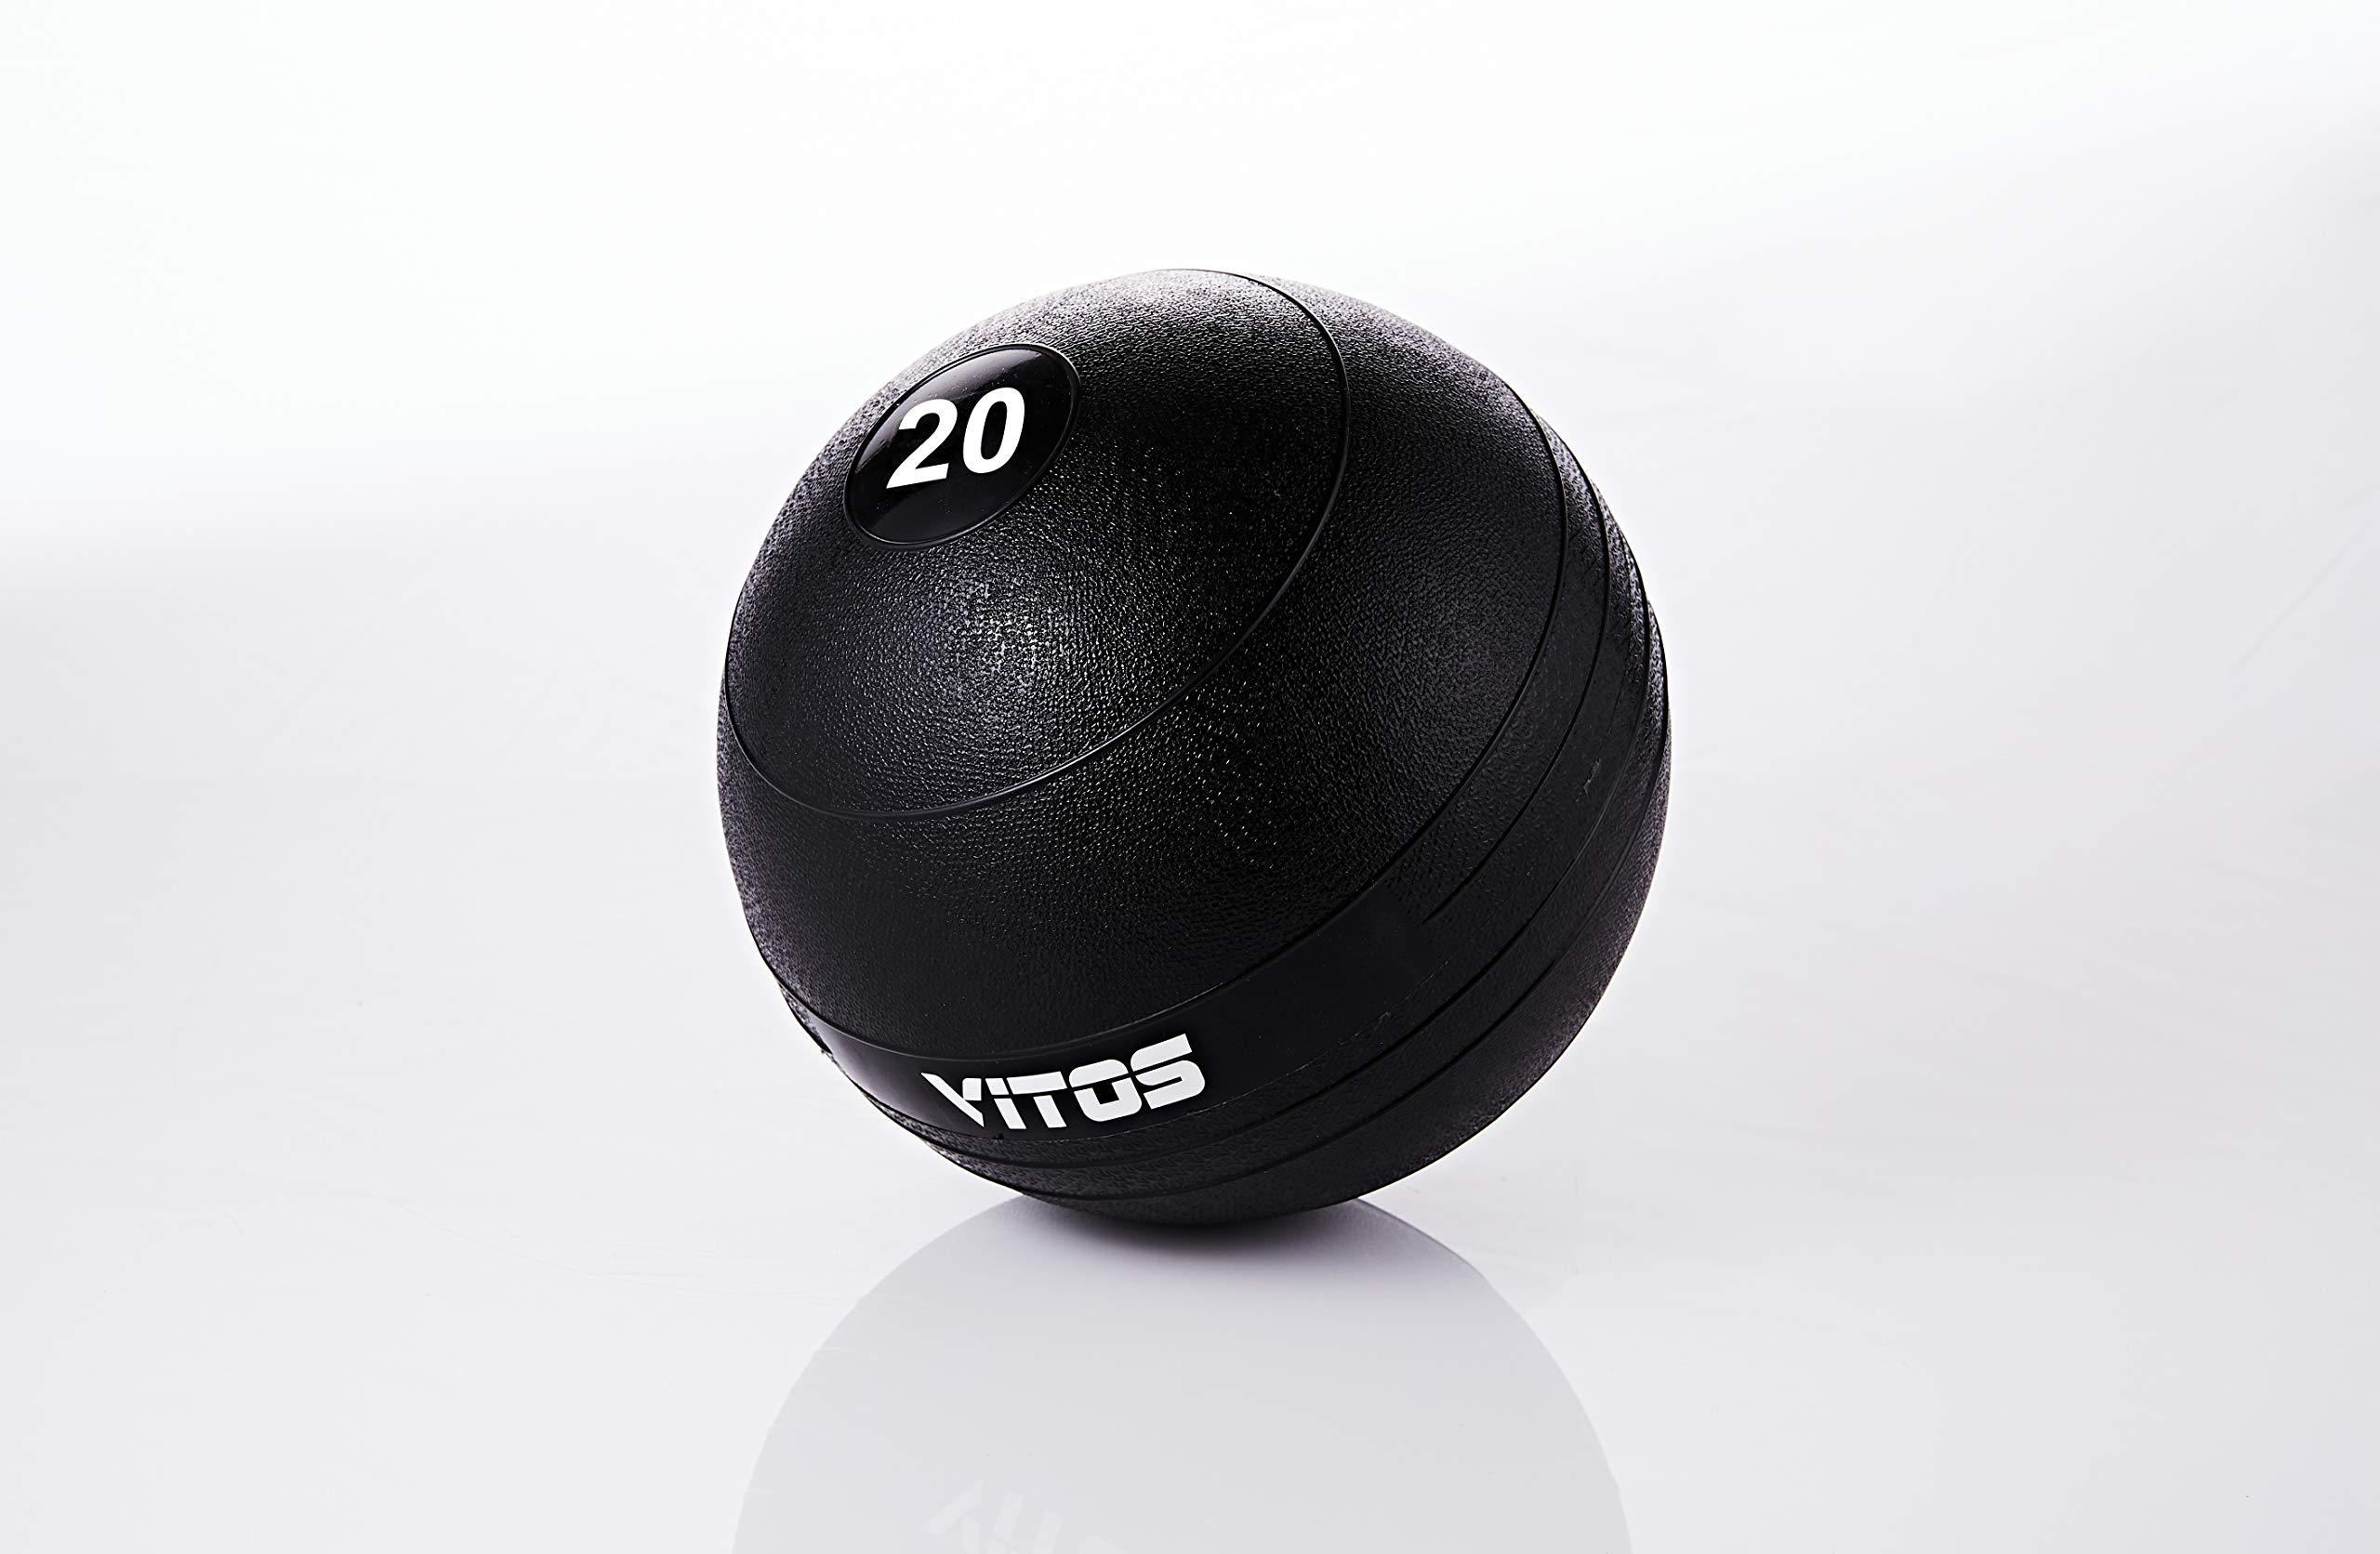 Vitos Fitness Exercise Slam Medicine Ball 10 to 70 Pounds | Durable Weighted Gym Accessory Strength Conditioning Cross Training Core Squats Lunges Spike Ball Rubber Weight Workout (20)